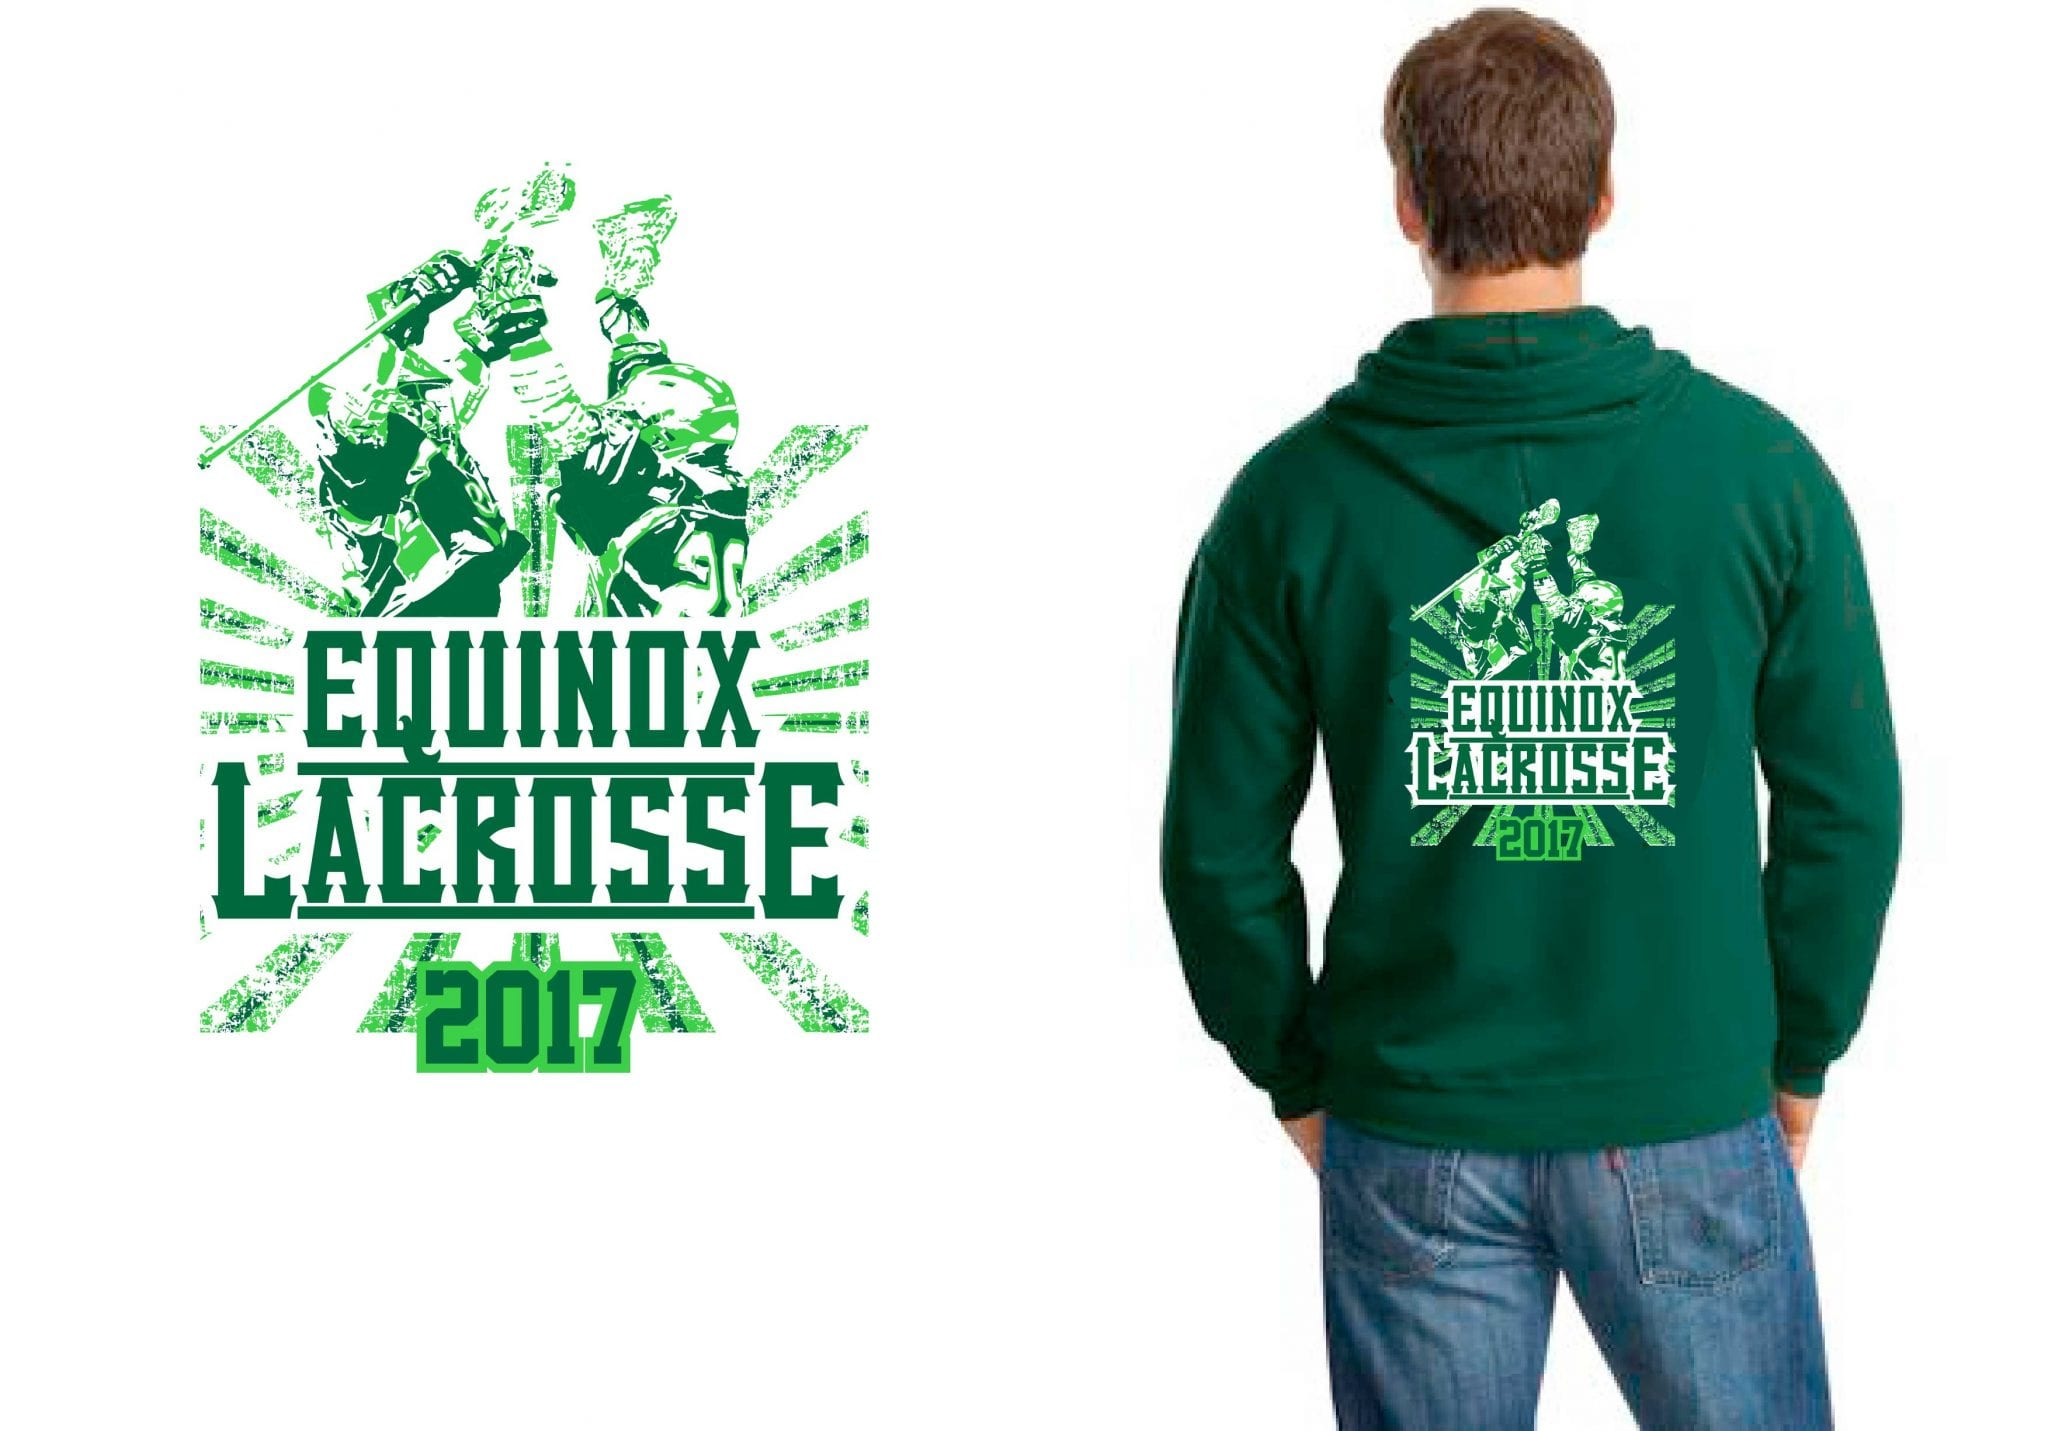 2017 Equinox Lacrosse vector logo design for t-shirt UrArtStudio